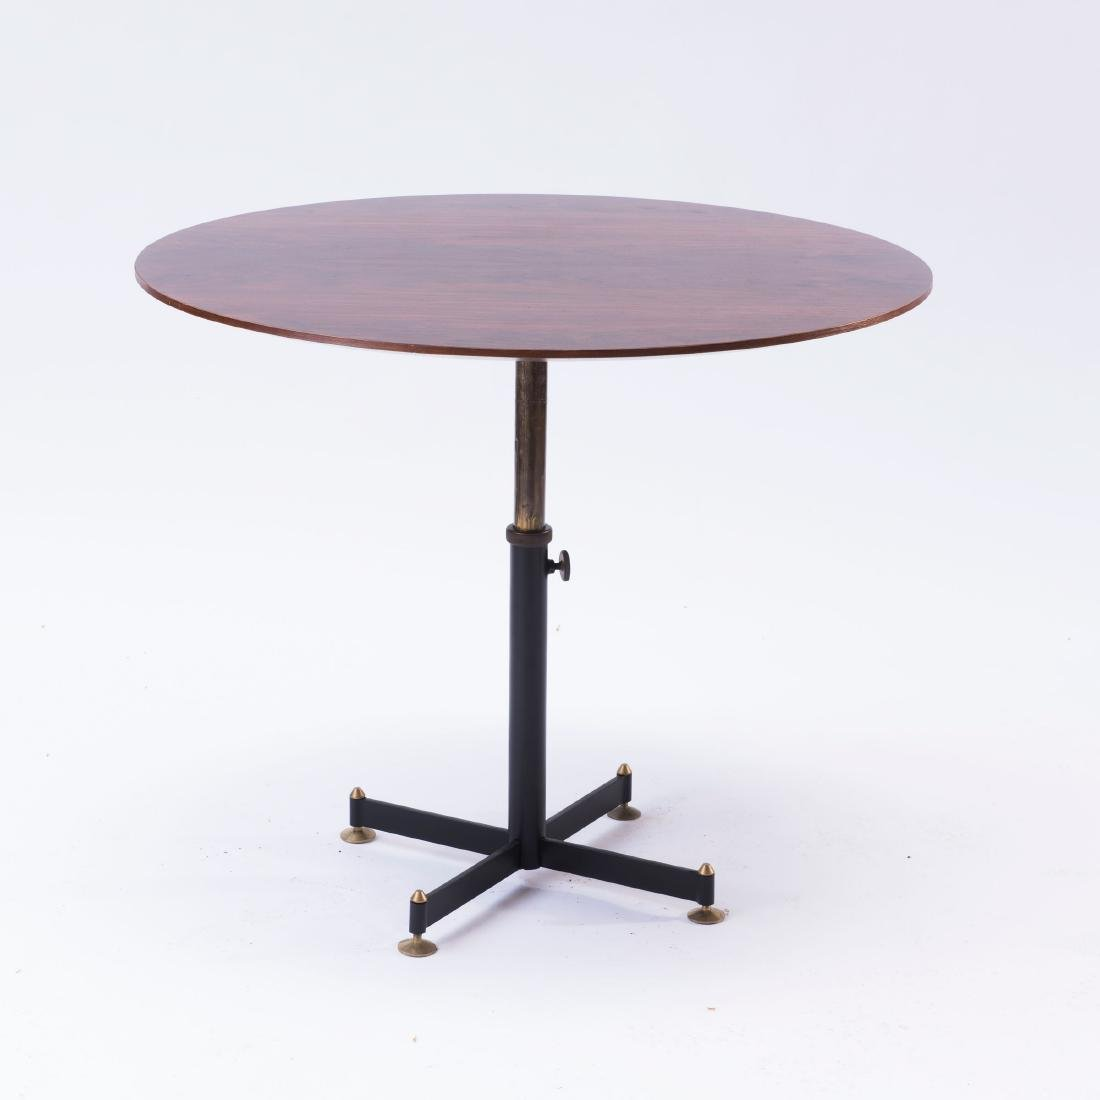 Table, c. 1955 - 2